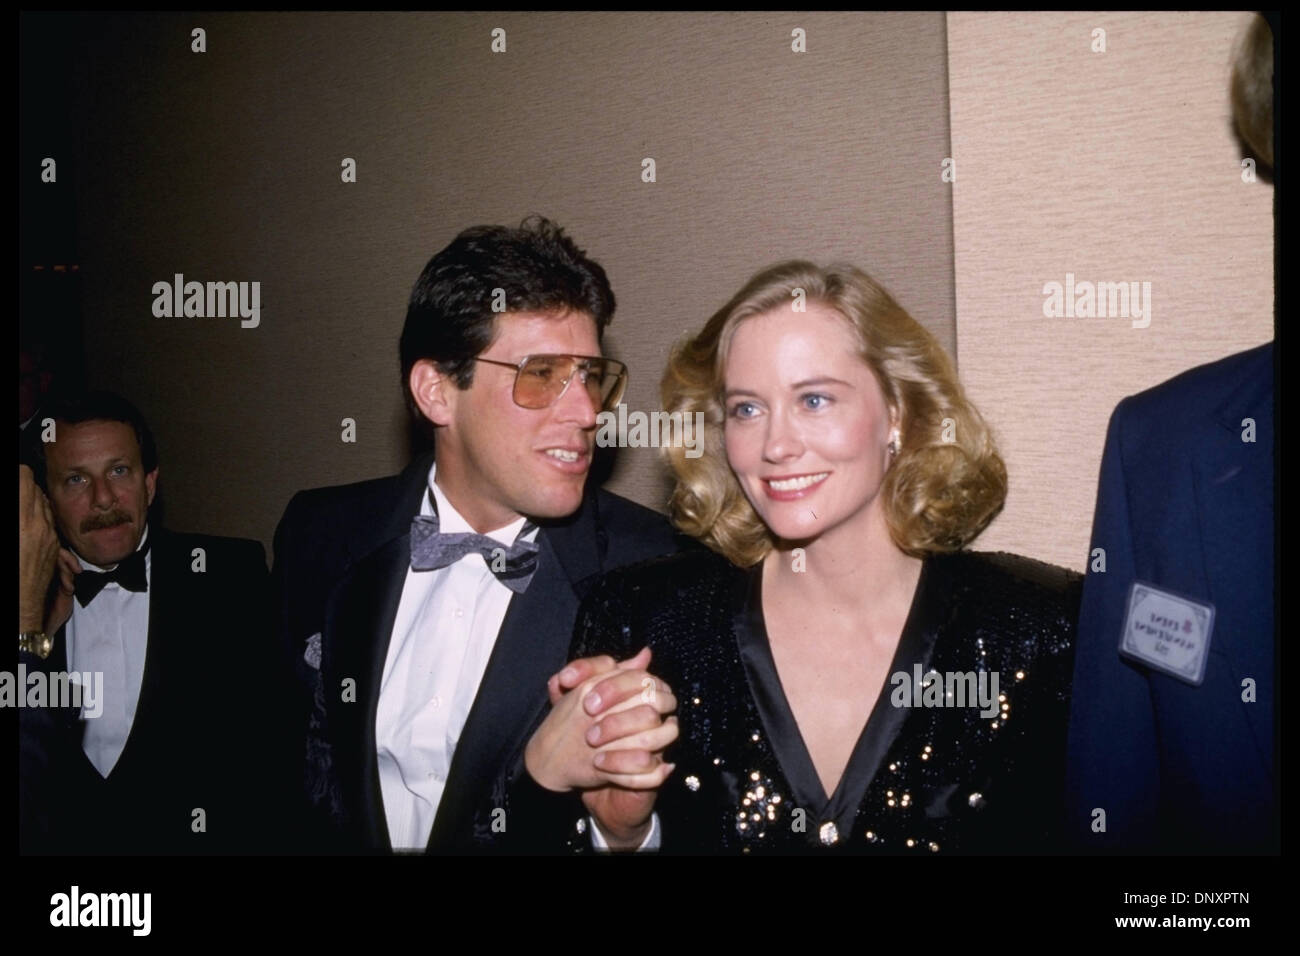 bruce oppenheim dating High quality cybill shepherd pictures and hot on dating music legend elvis presley on march 1, 1987, cybill married bruce oppenheim, a doctor, in.